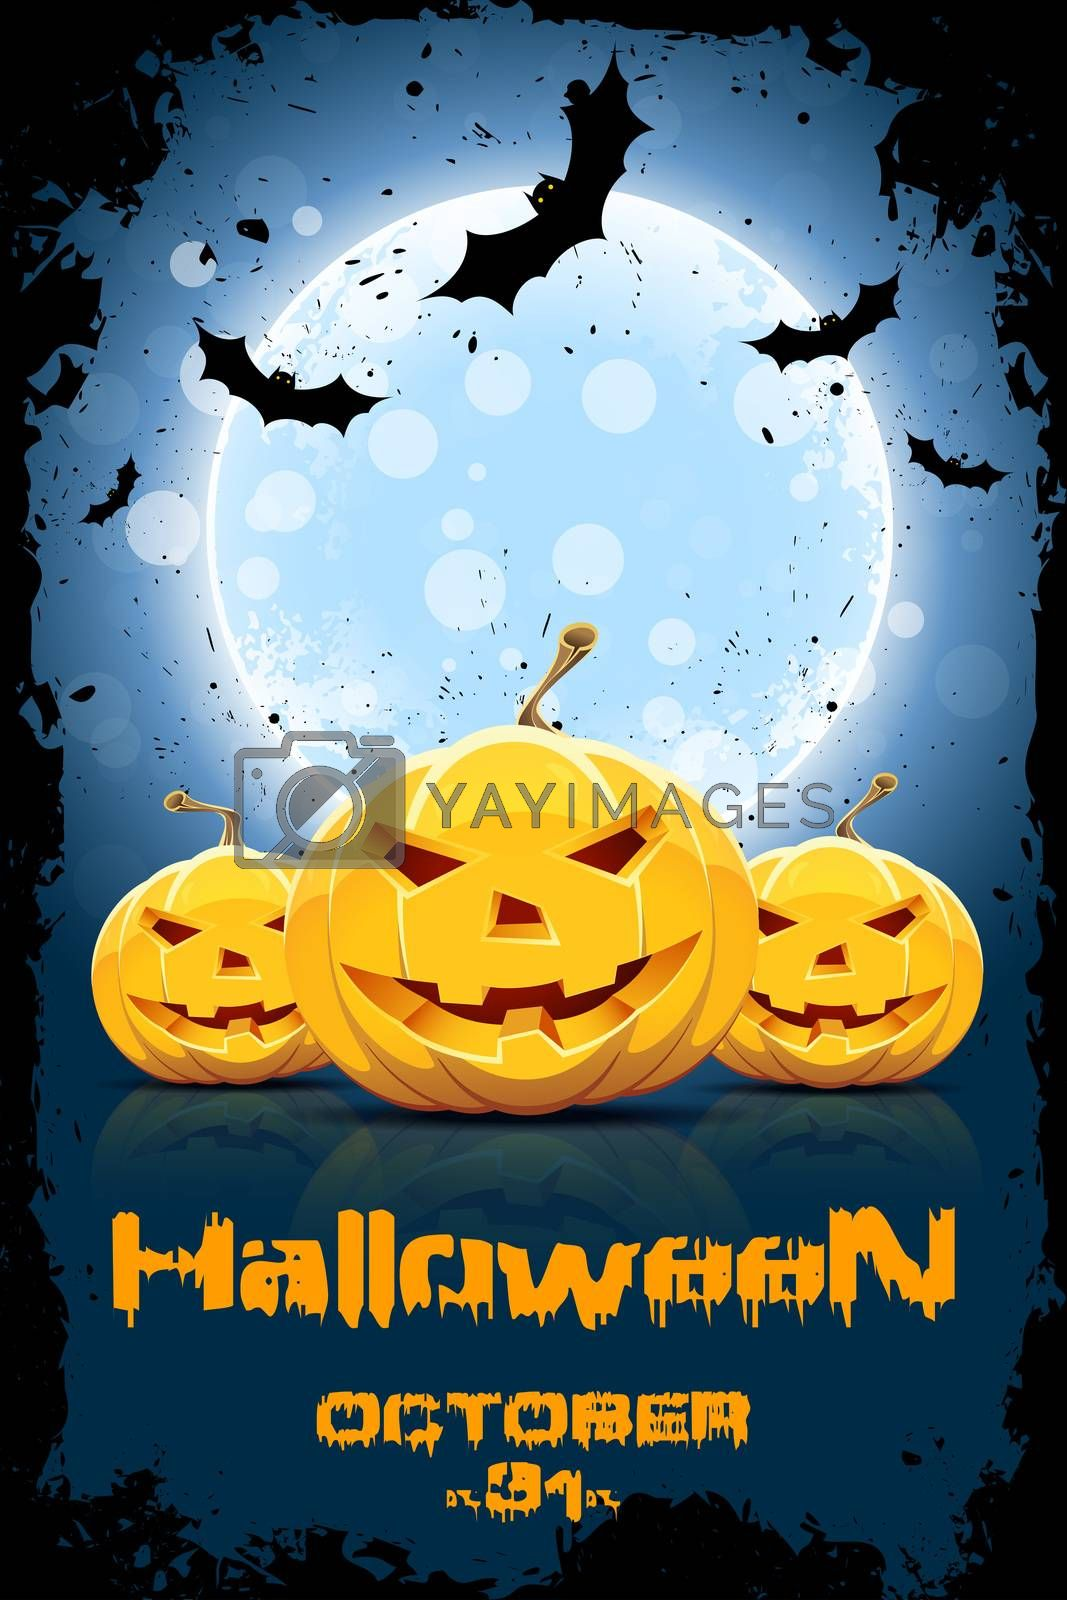 Grungy Background for Halloween Party by WaD